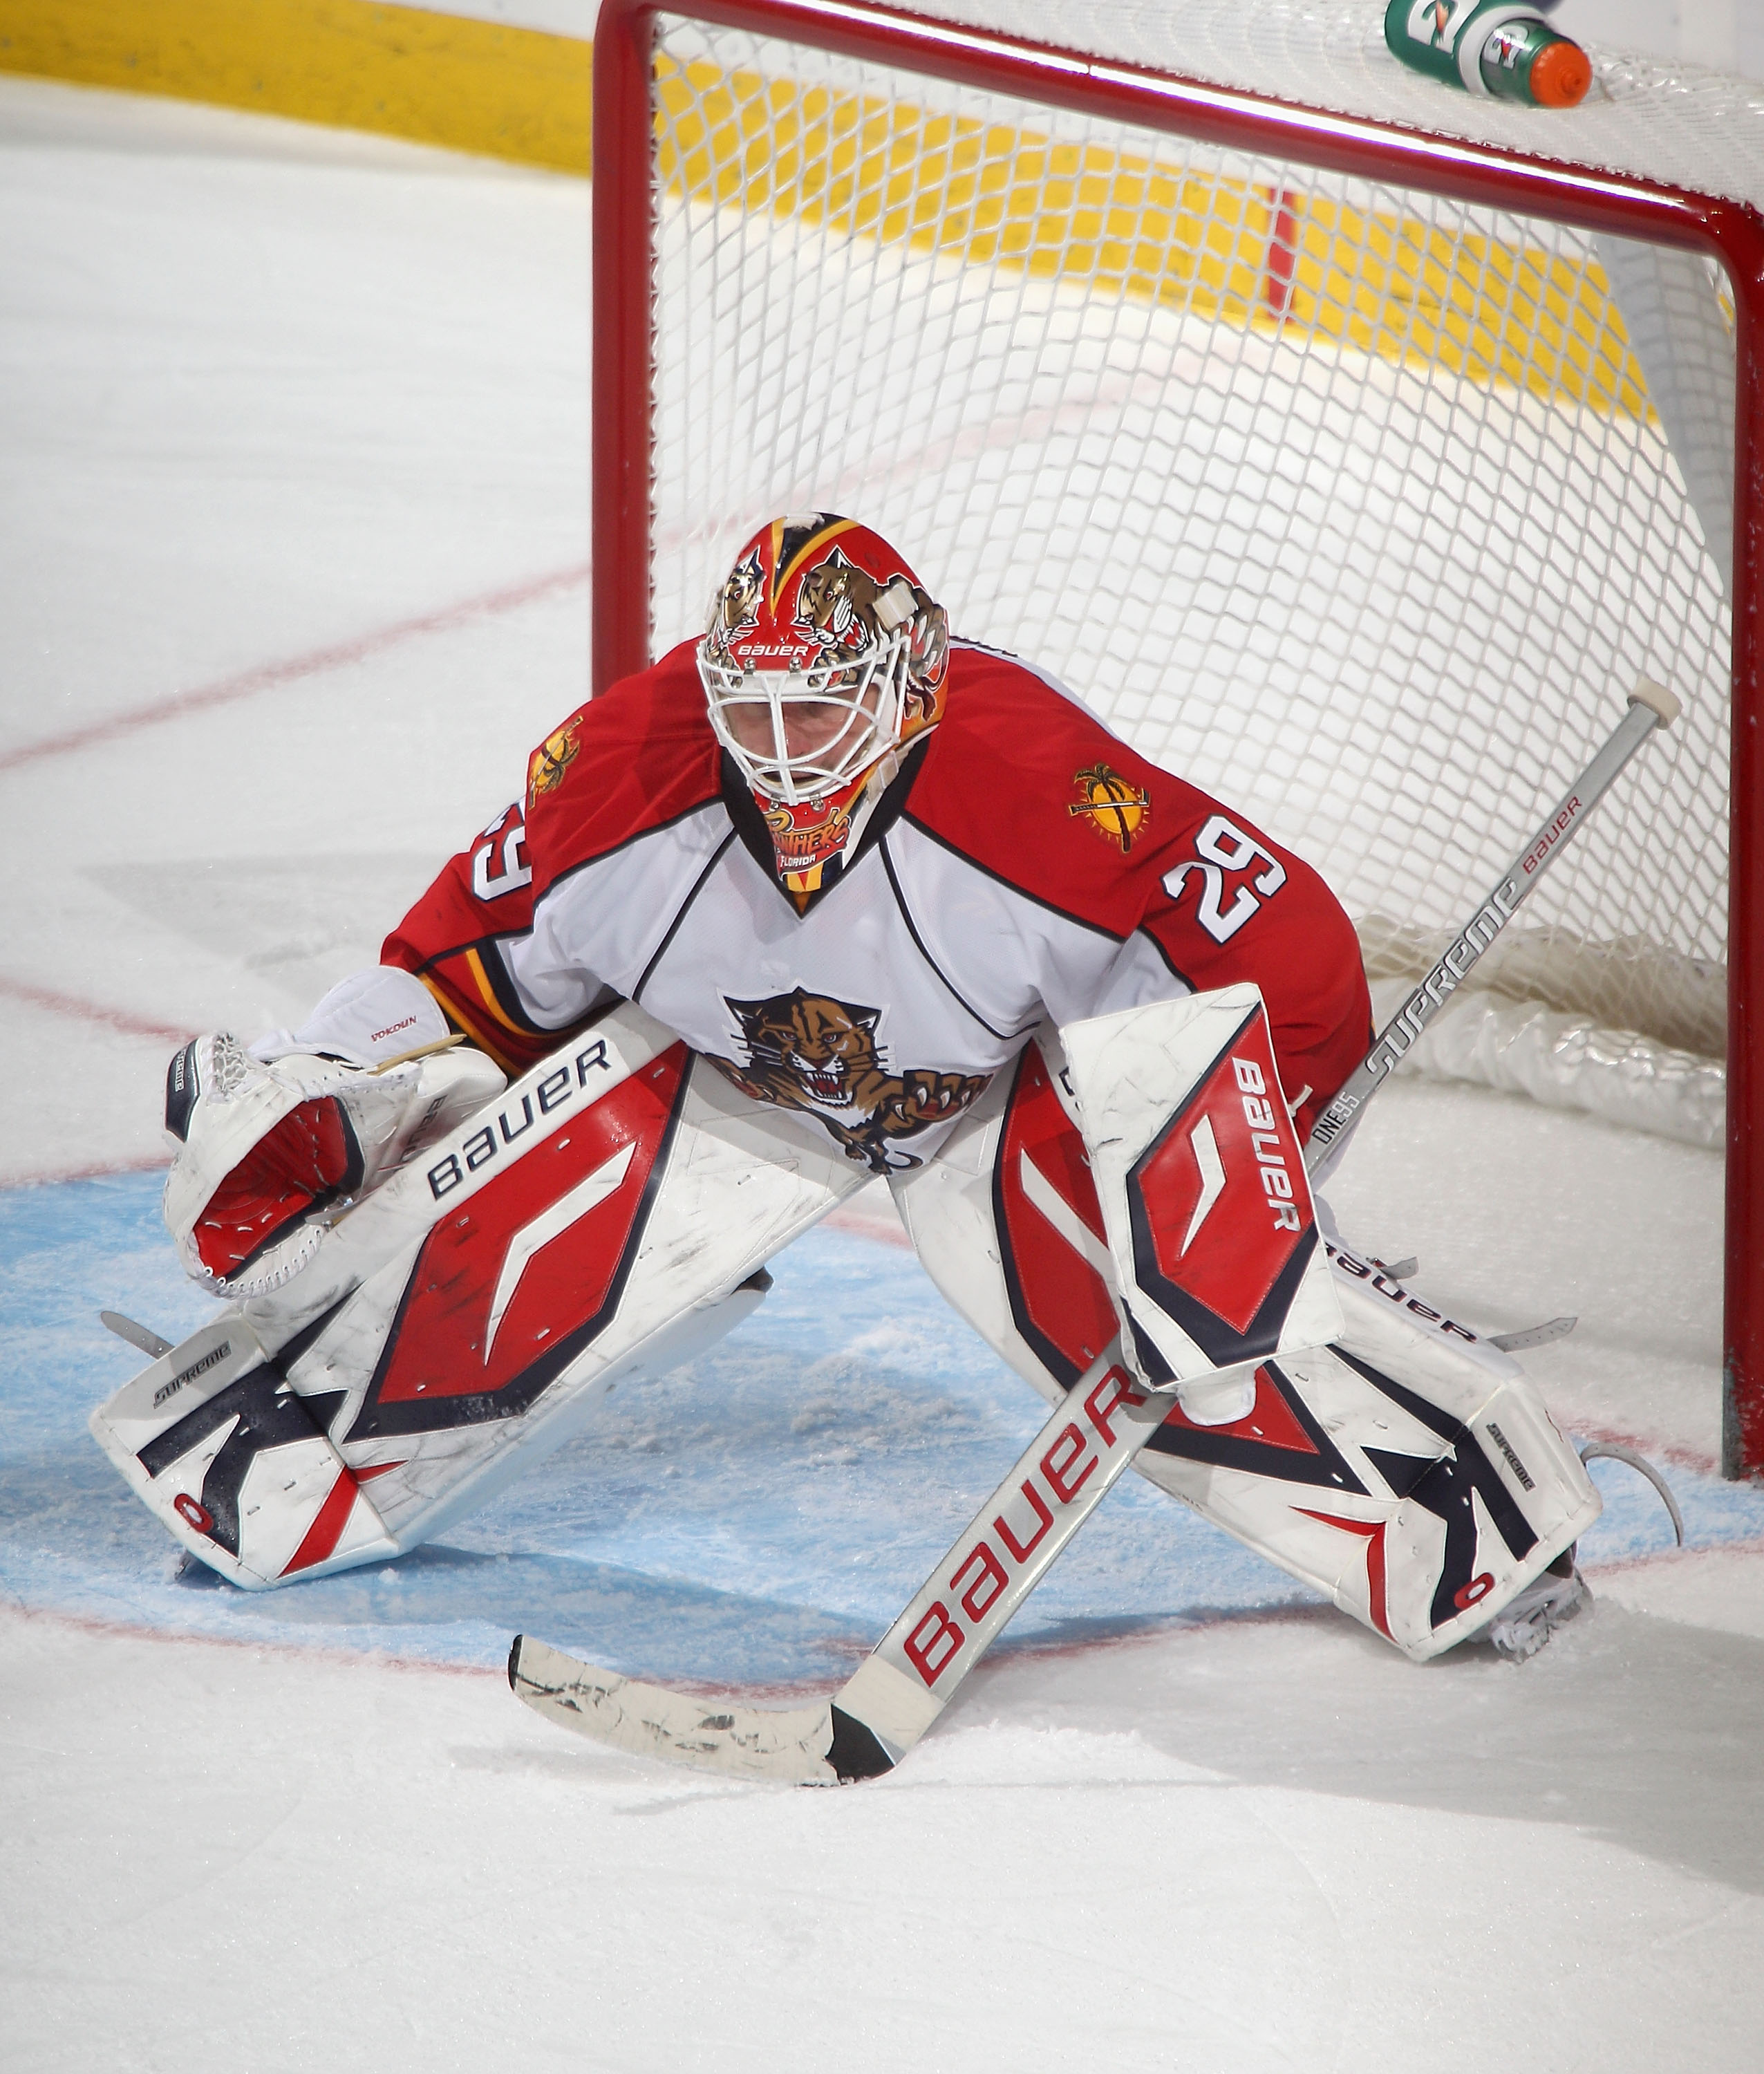 BUFFALO, NY - DECEMBER 23:  Tomas Vokoun #29 of the Florida Panthers stands in goal against the Buffalo Sabres  at HSBC Arena on December 23, 2010 in Buffalo, New York. Florida won 4-3.  (Photo by Rick Stewart/Getty Images)